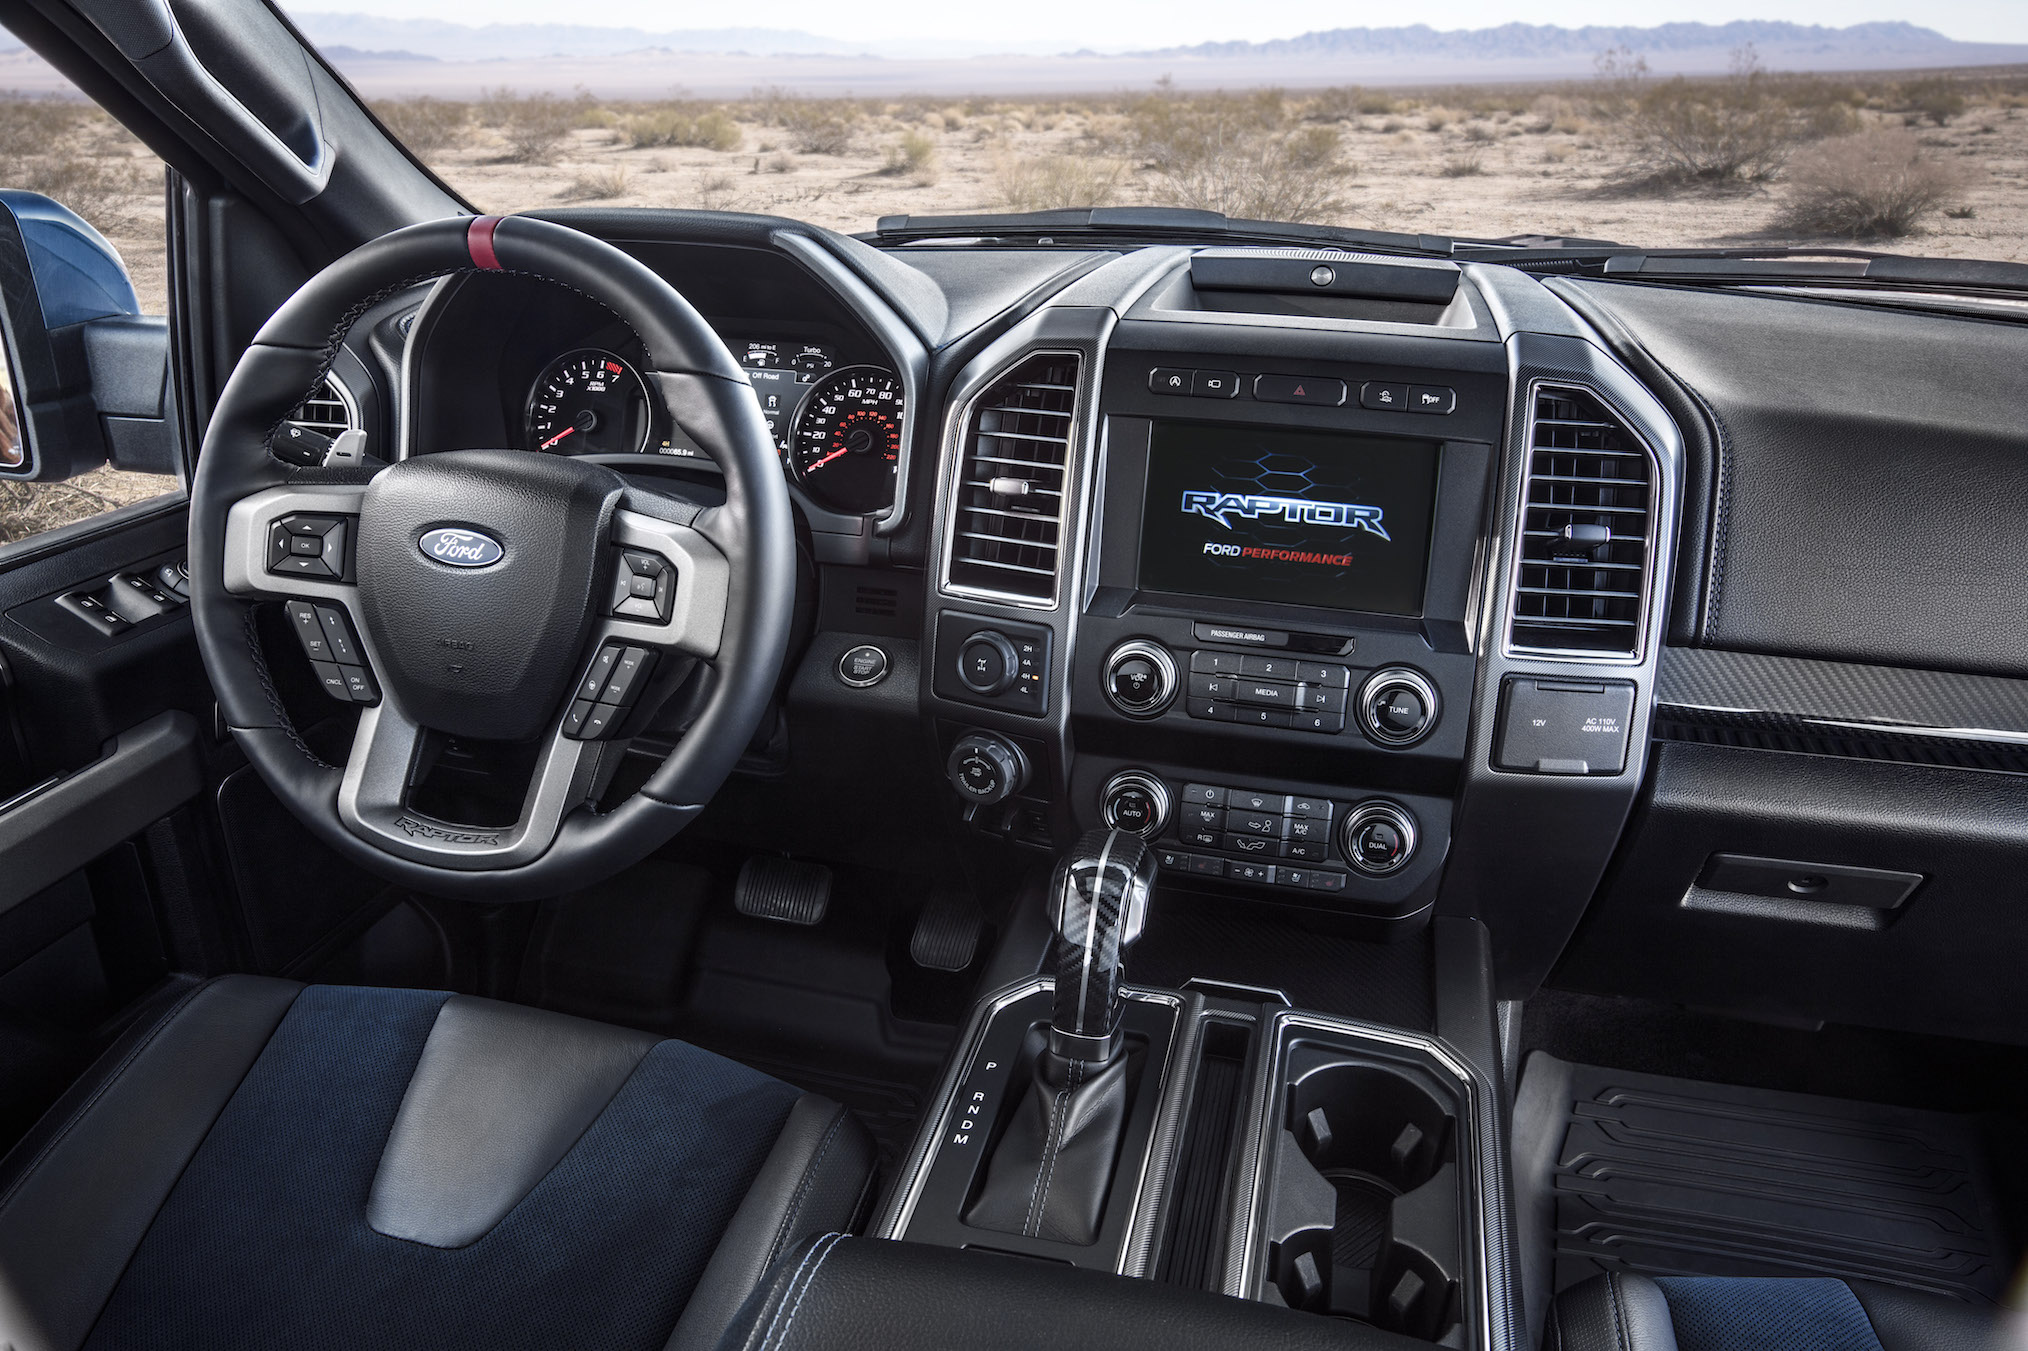 2019 Ford F-150 Raptor Interior Screen infotanment